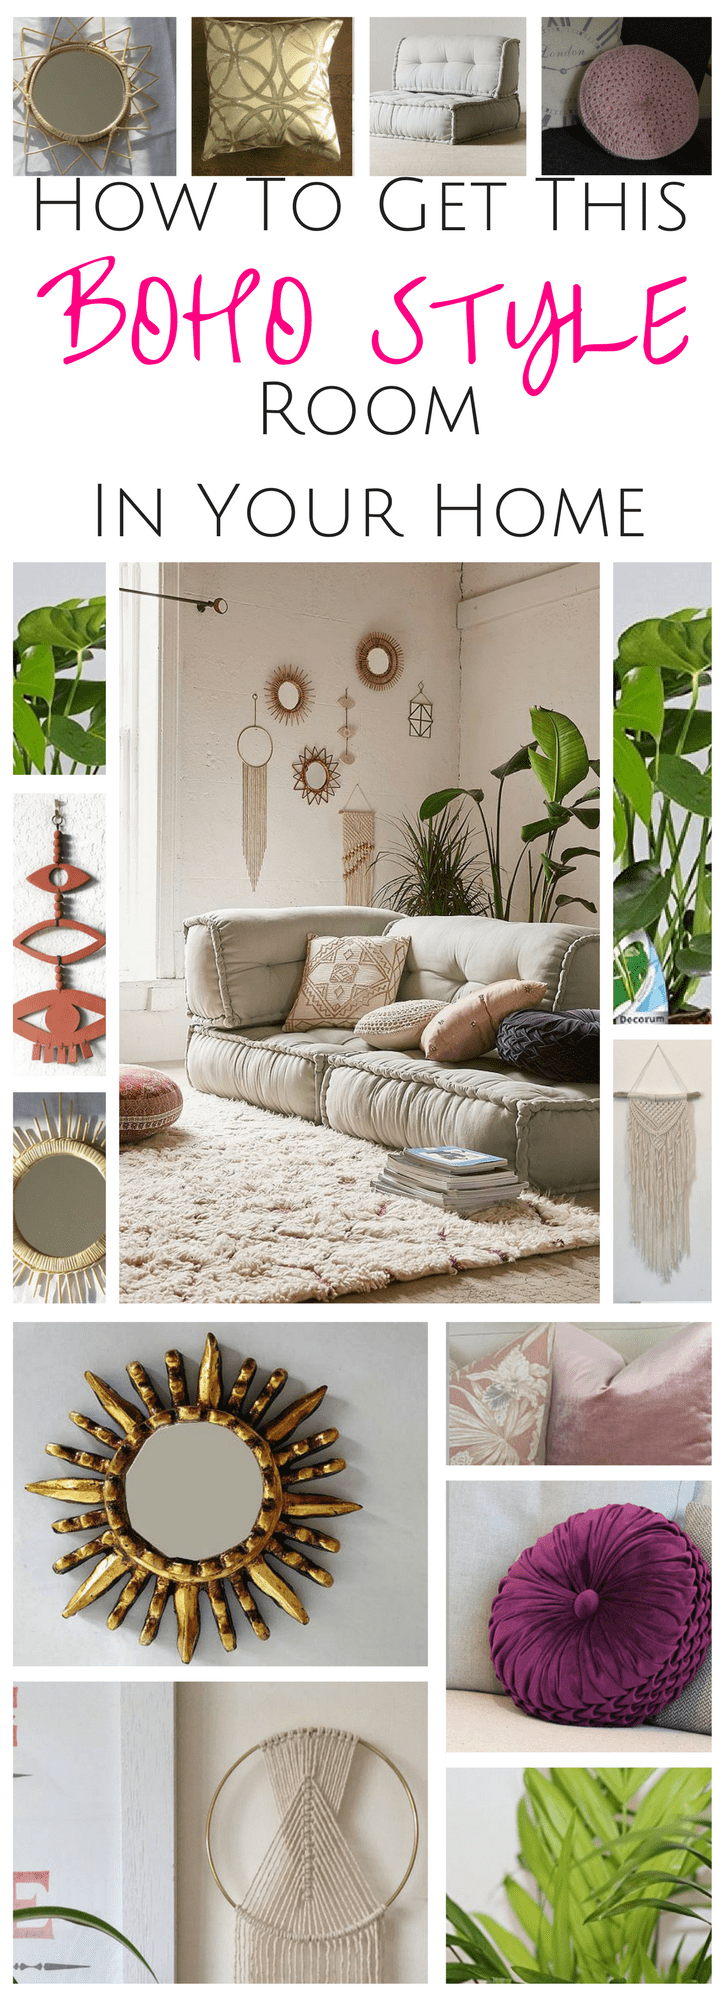 How To Get Bohemian Style Decor In Your Home Without